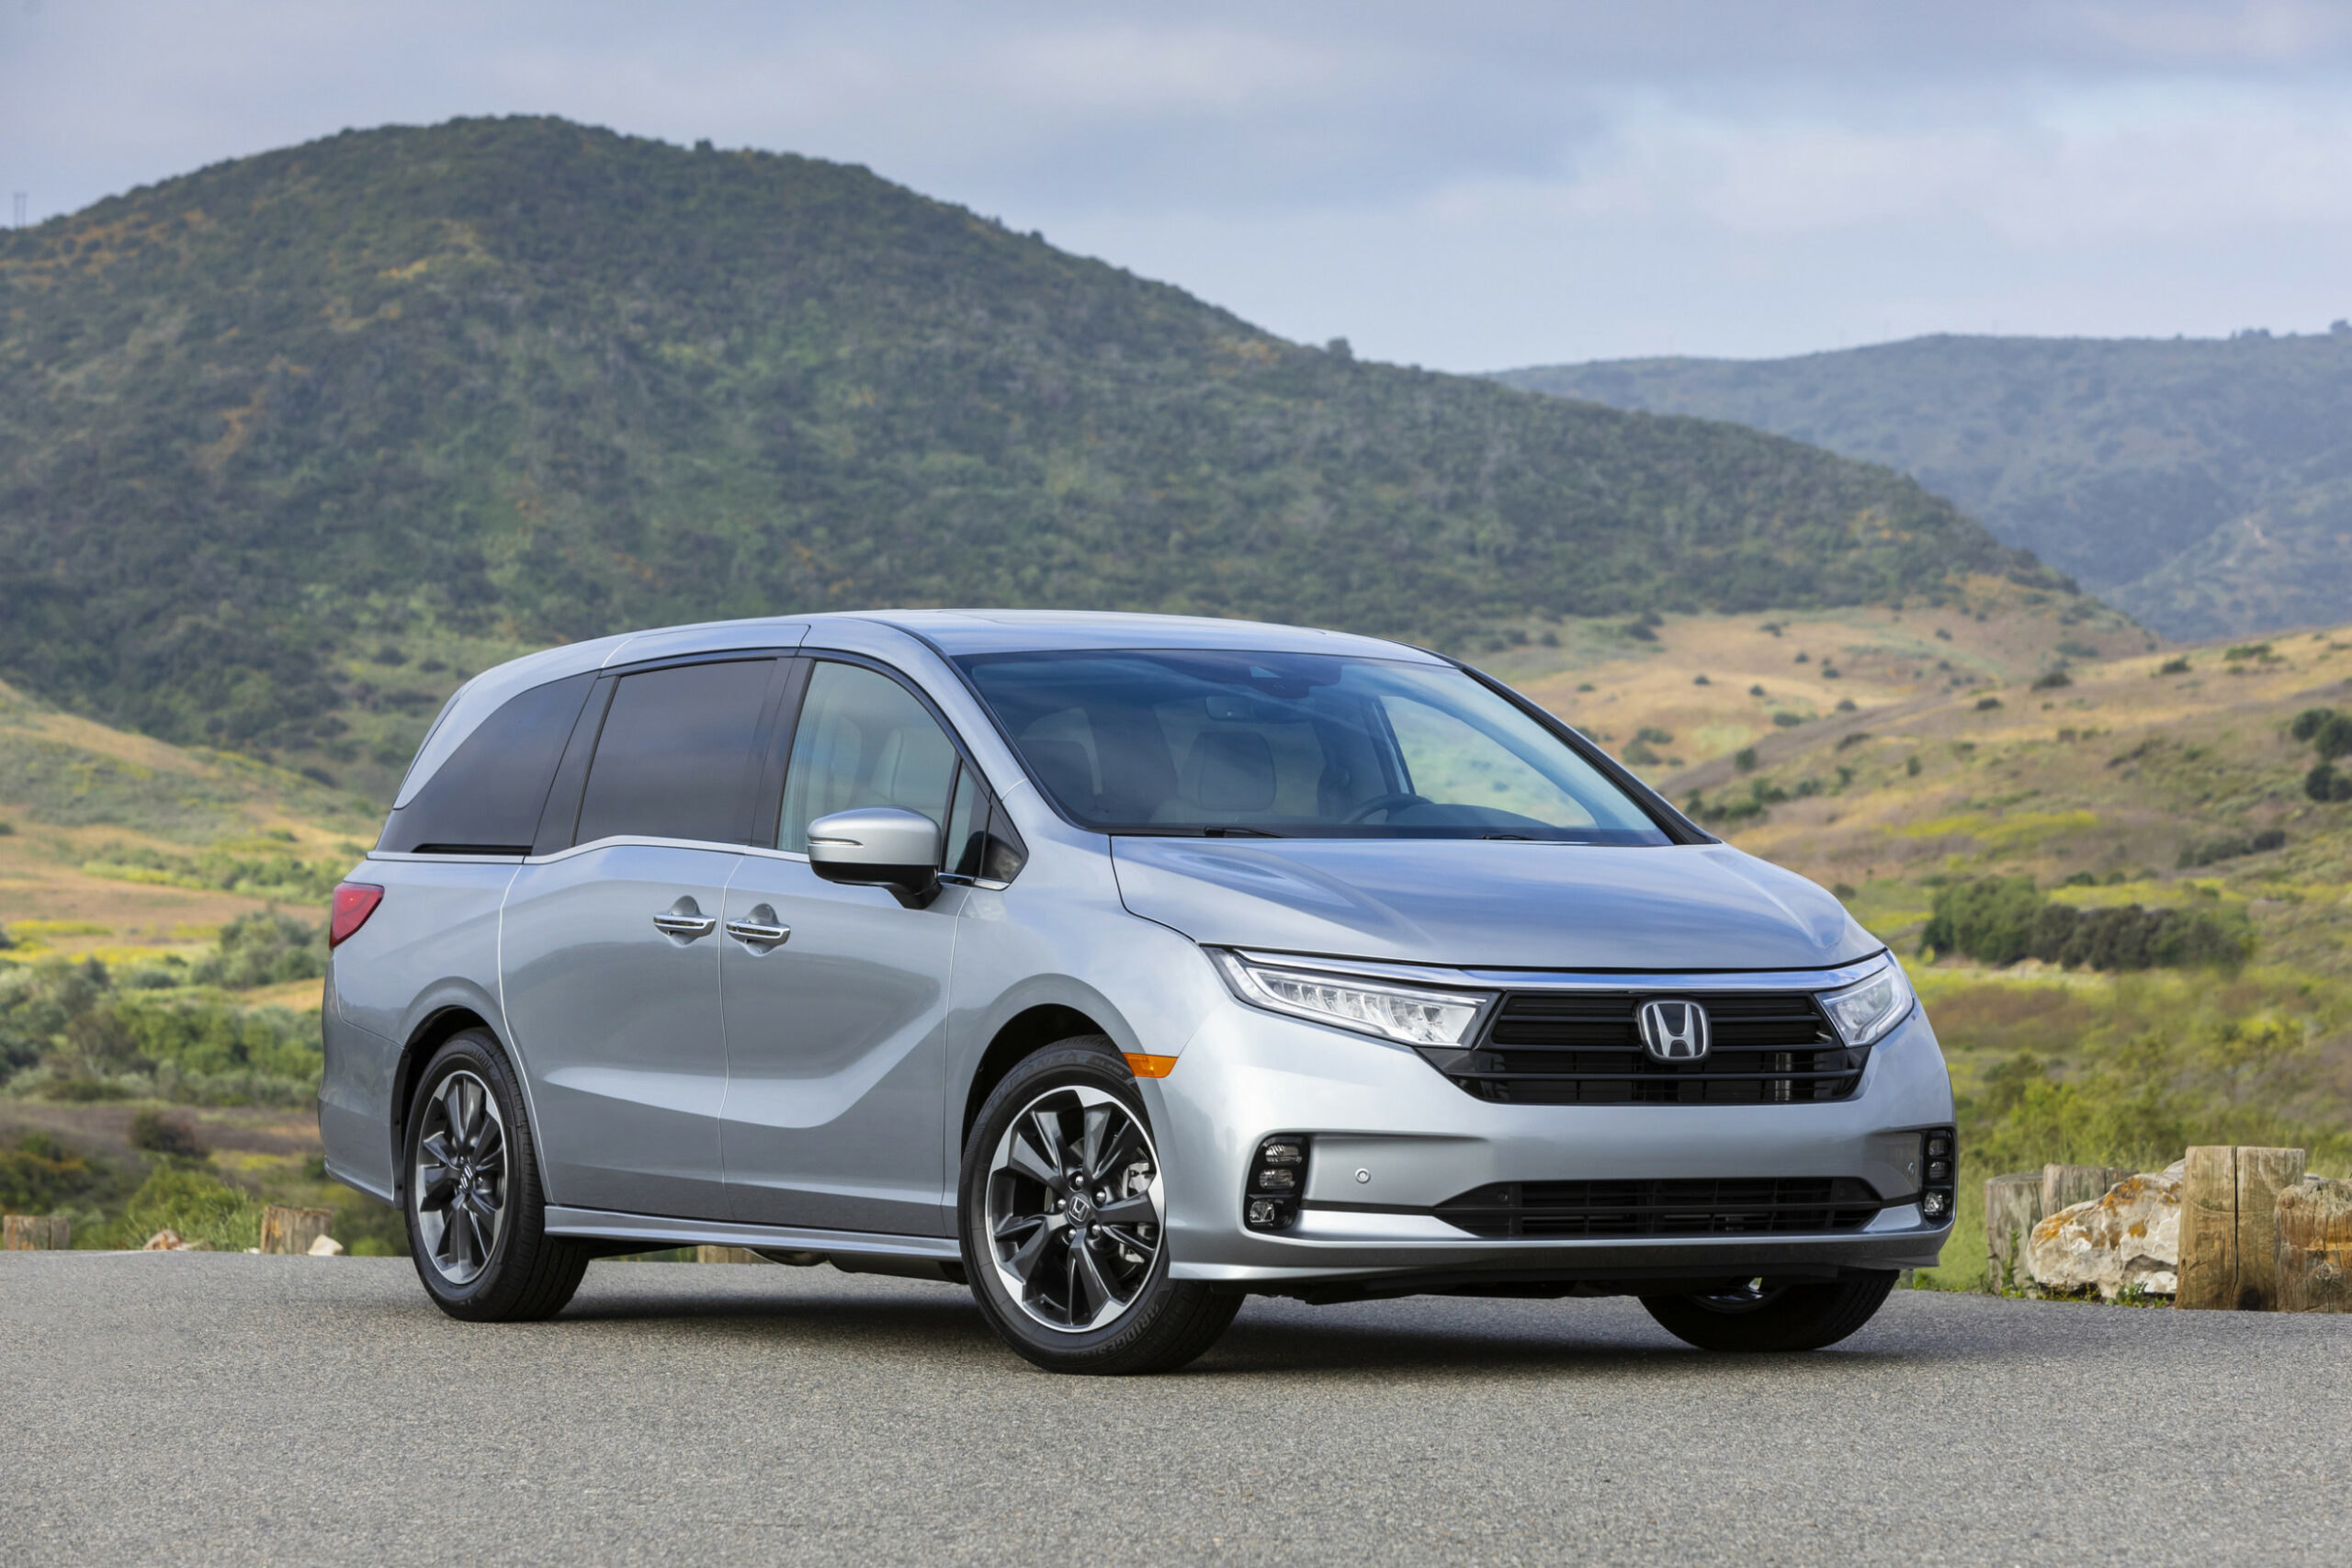 Prices When Does 2022 Honda Odyssey Come Out